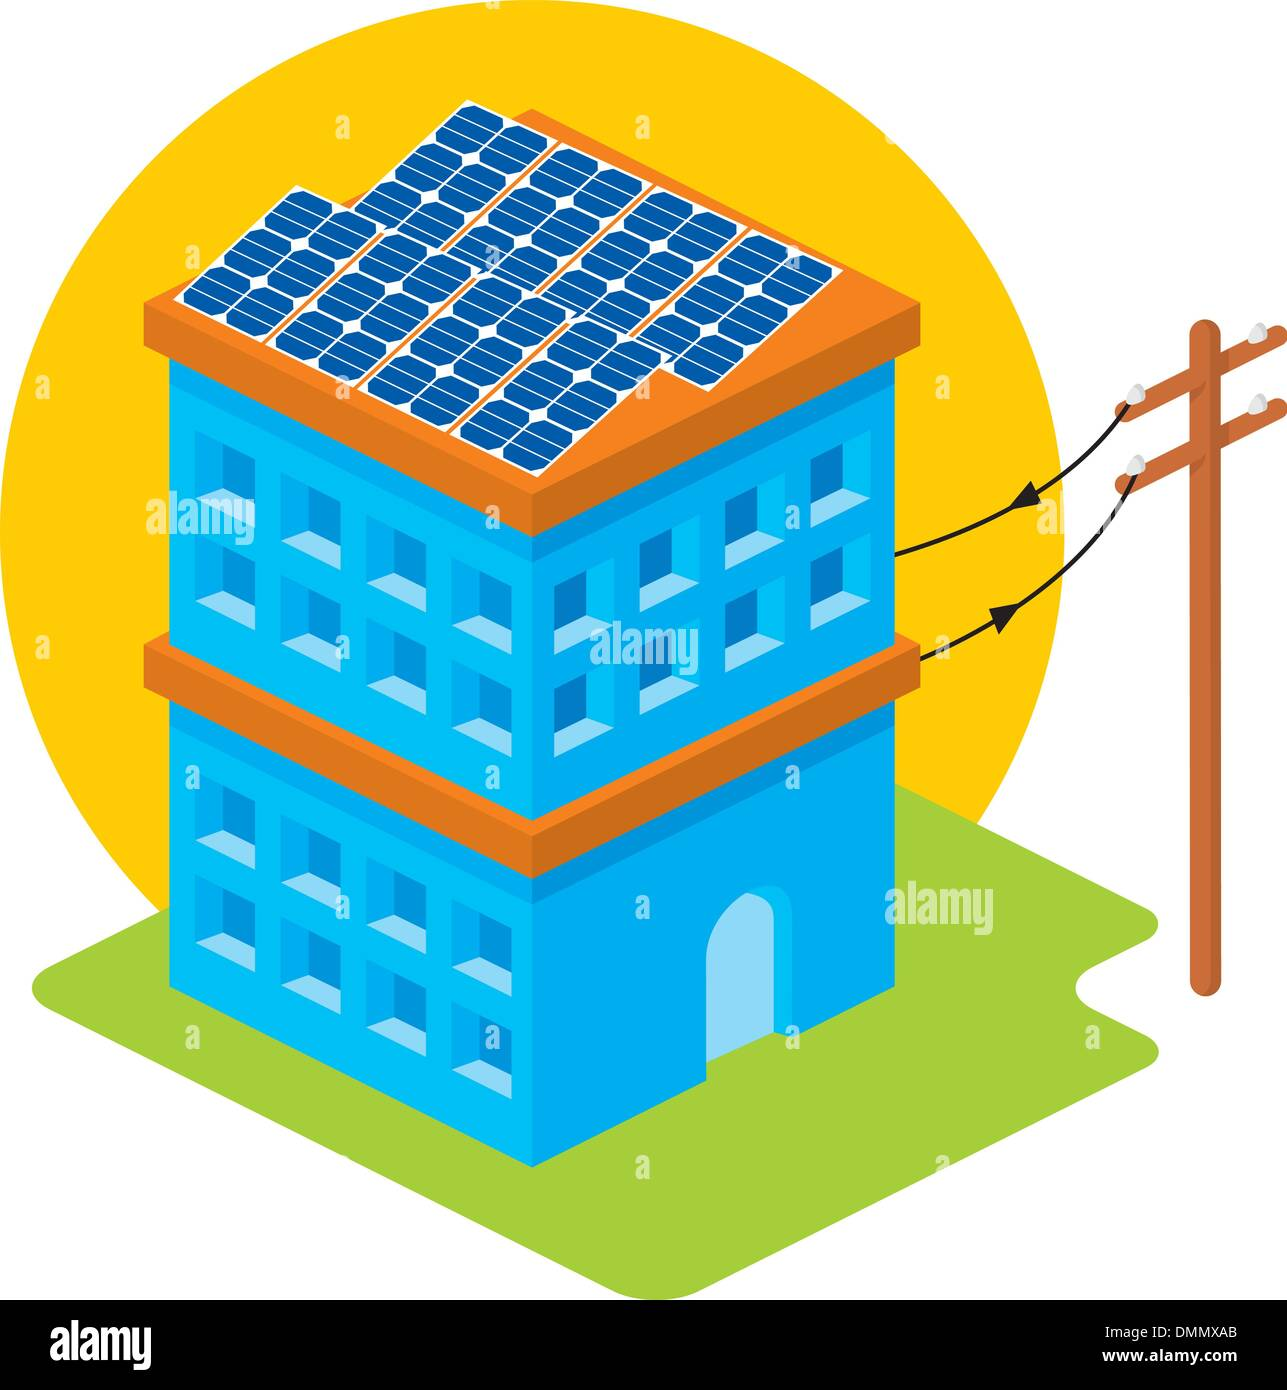 Solar house - Stock Vector